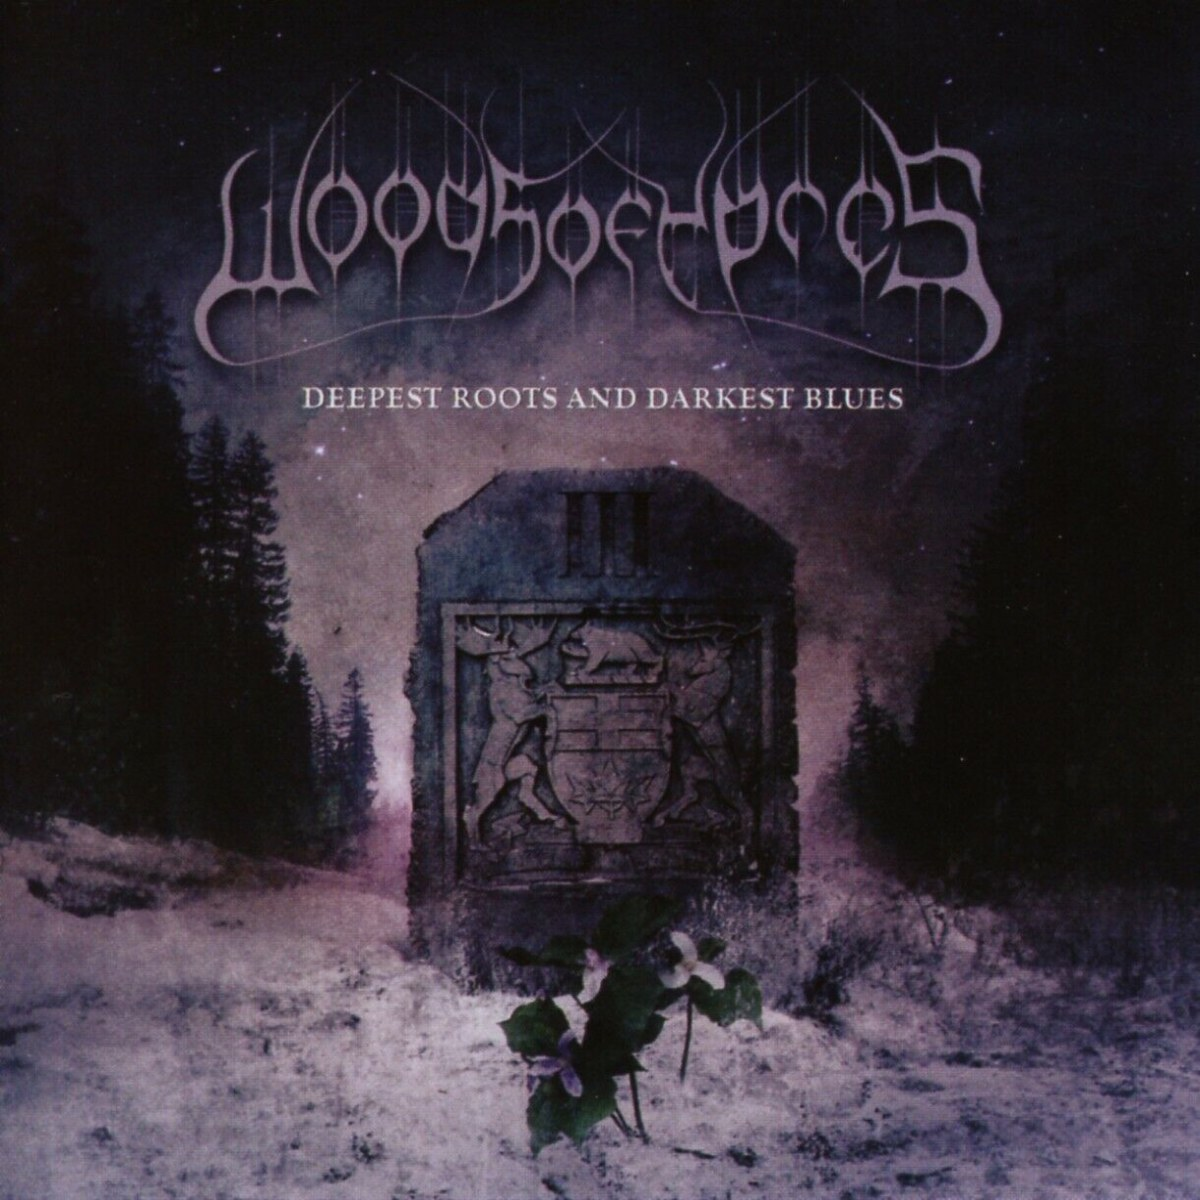 Review for Woods of Ypres - The Deepest Roots and Darkest Blues